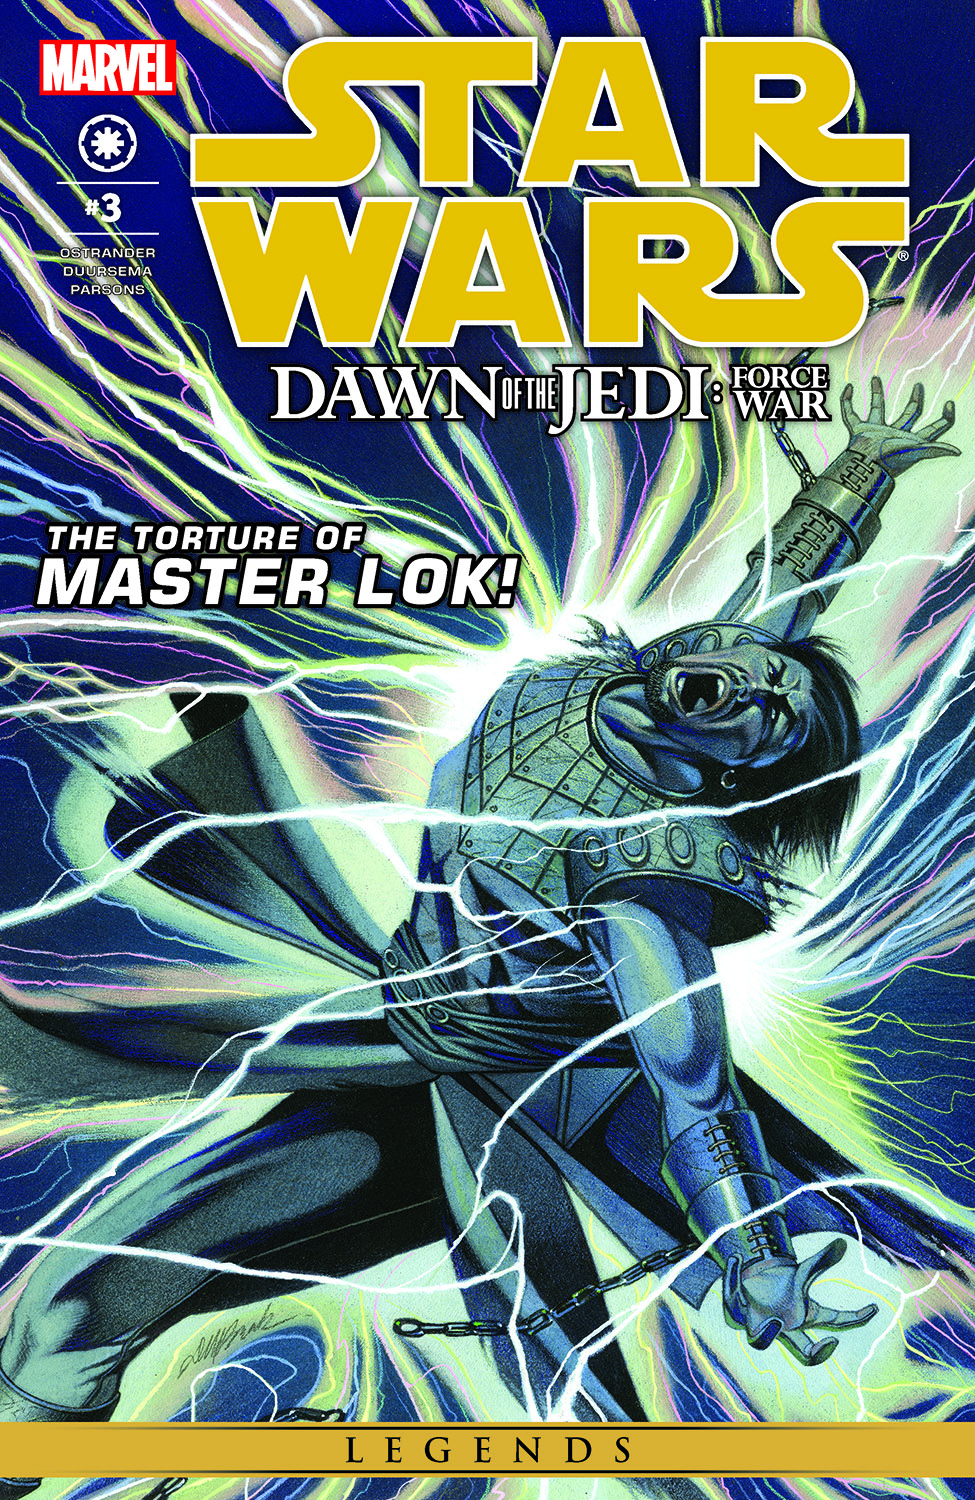 Star Wars: Dawn Of The Jedi - Force War (2013) #3